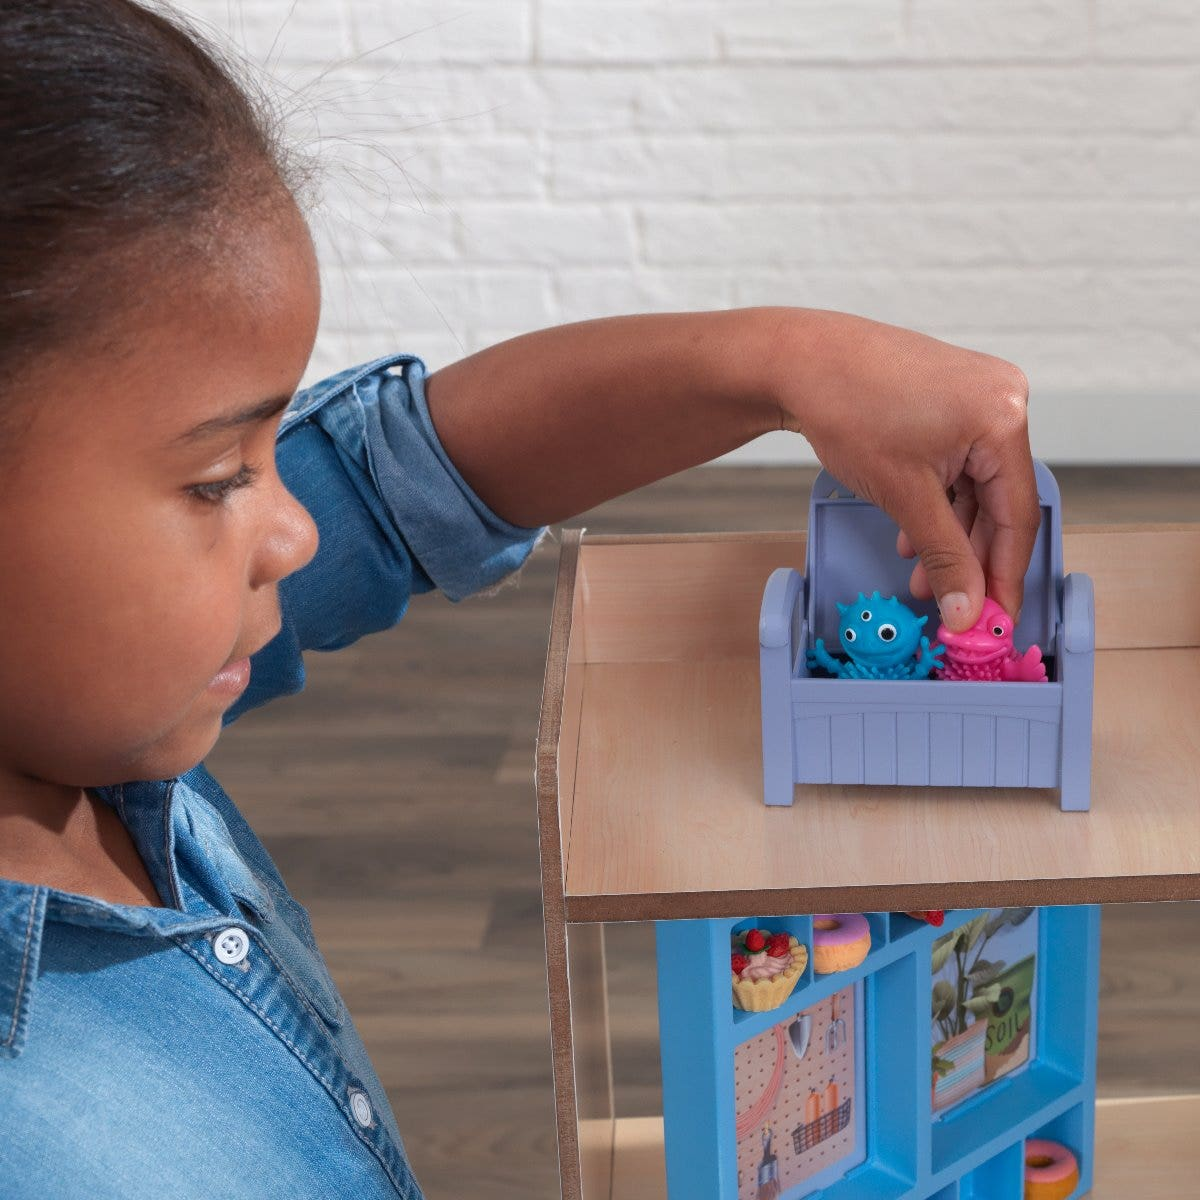 As a display spot for collectibles, or for personalizing the home, the built-in smart shelving units give kids more hands-on activity.